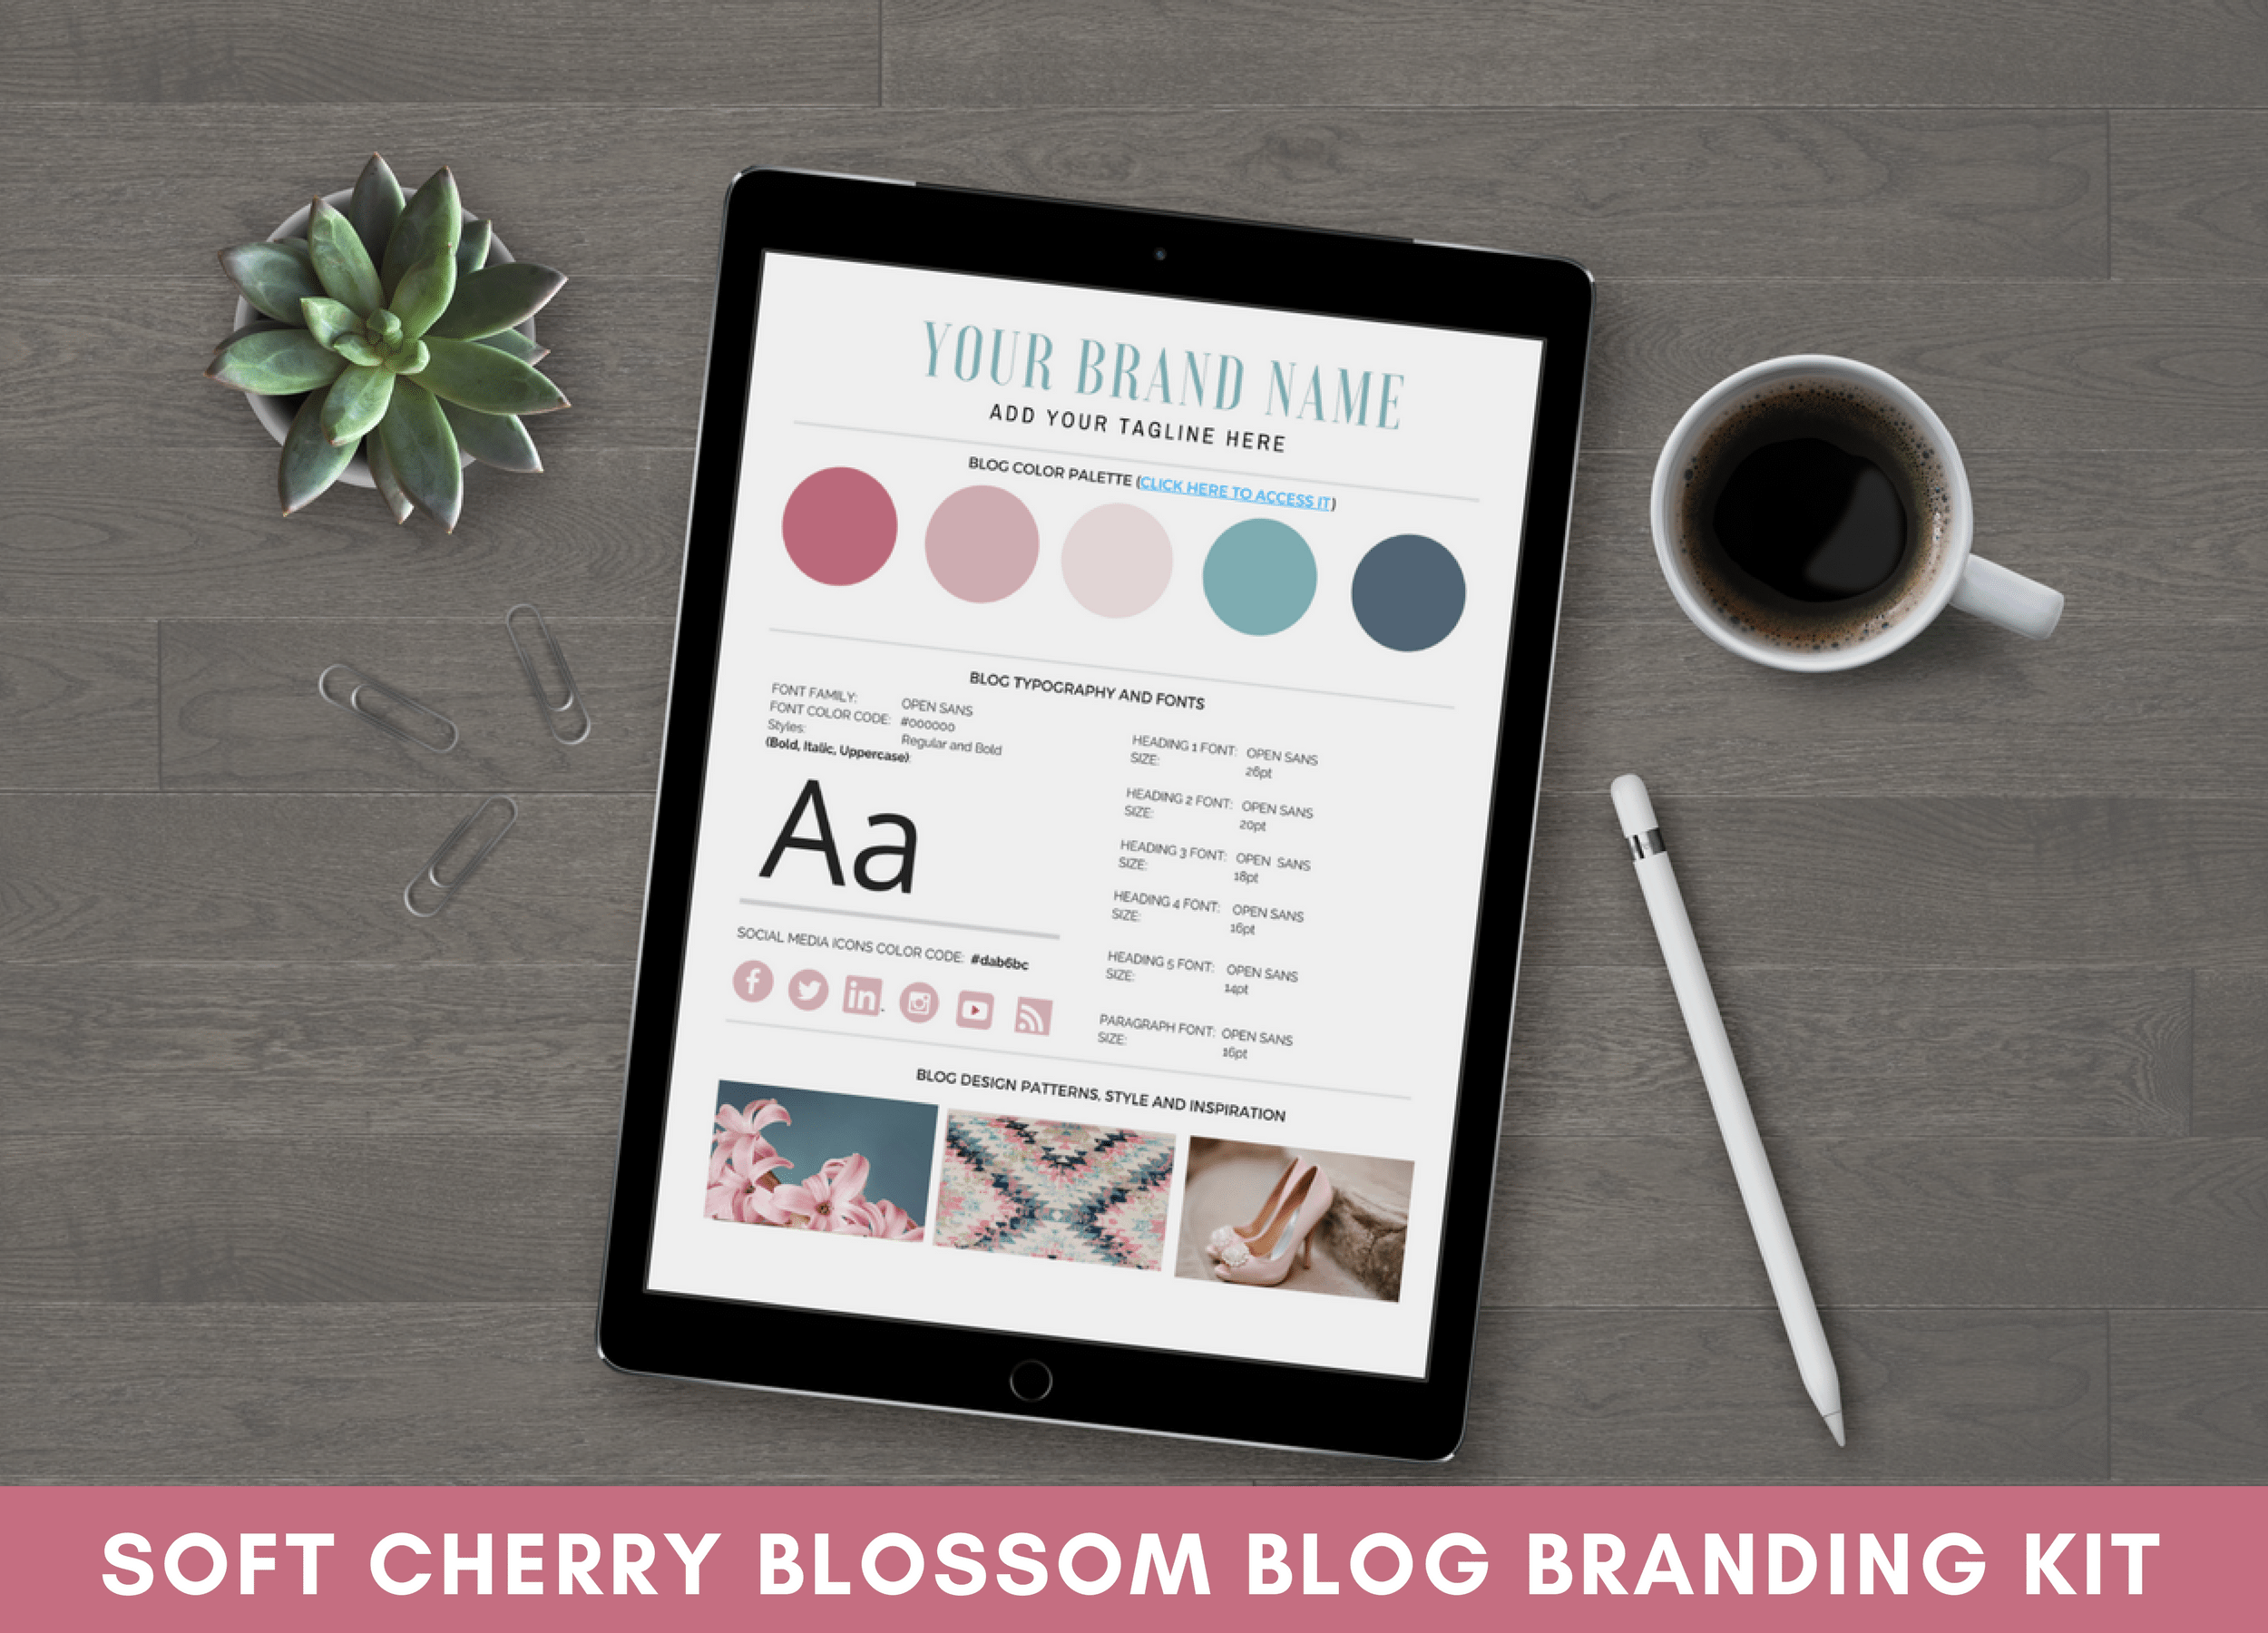 Blog Branding Kit - Soft Cherry Blossom